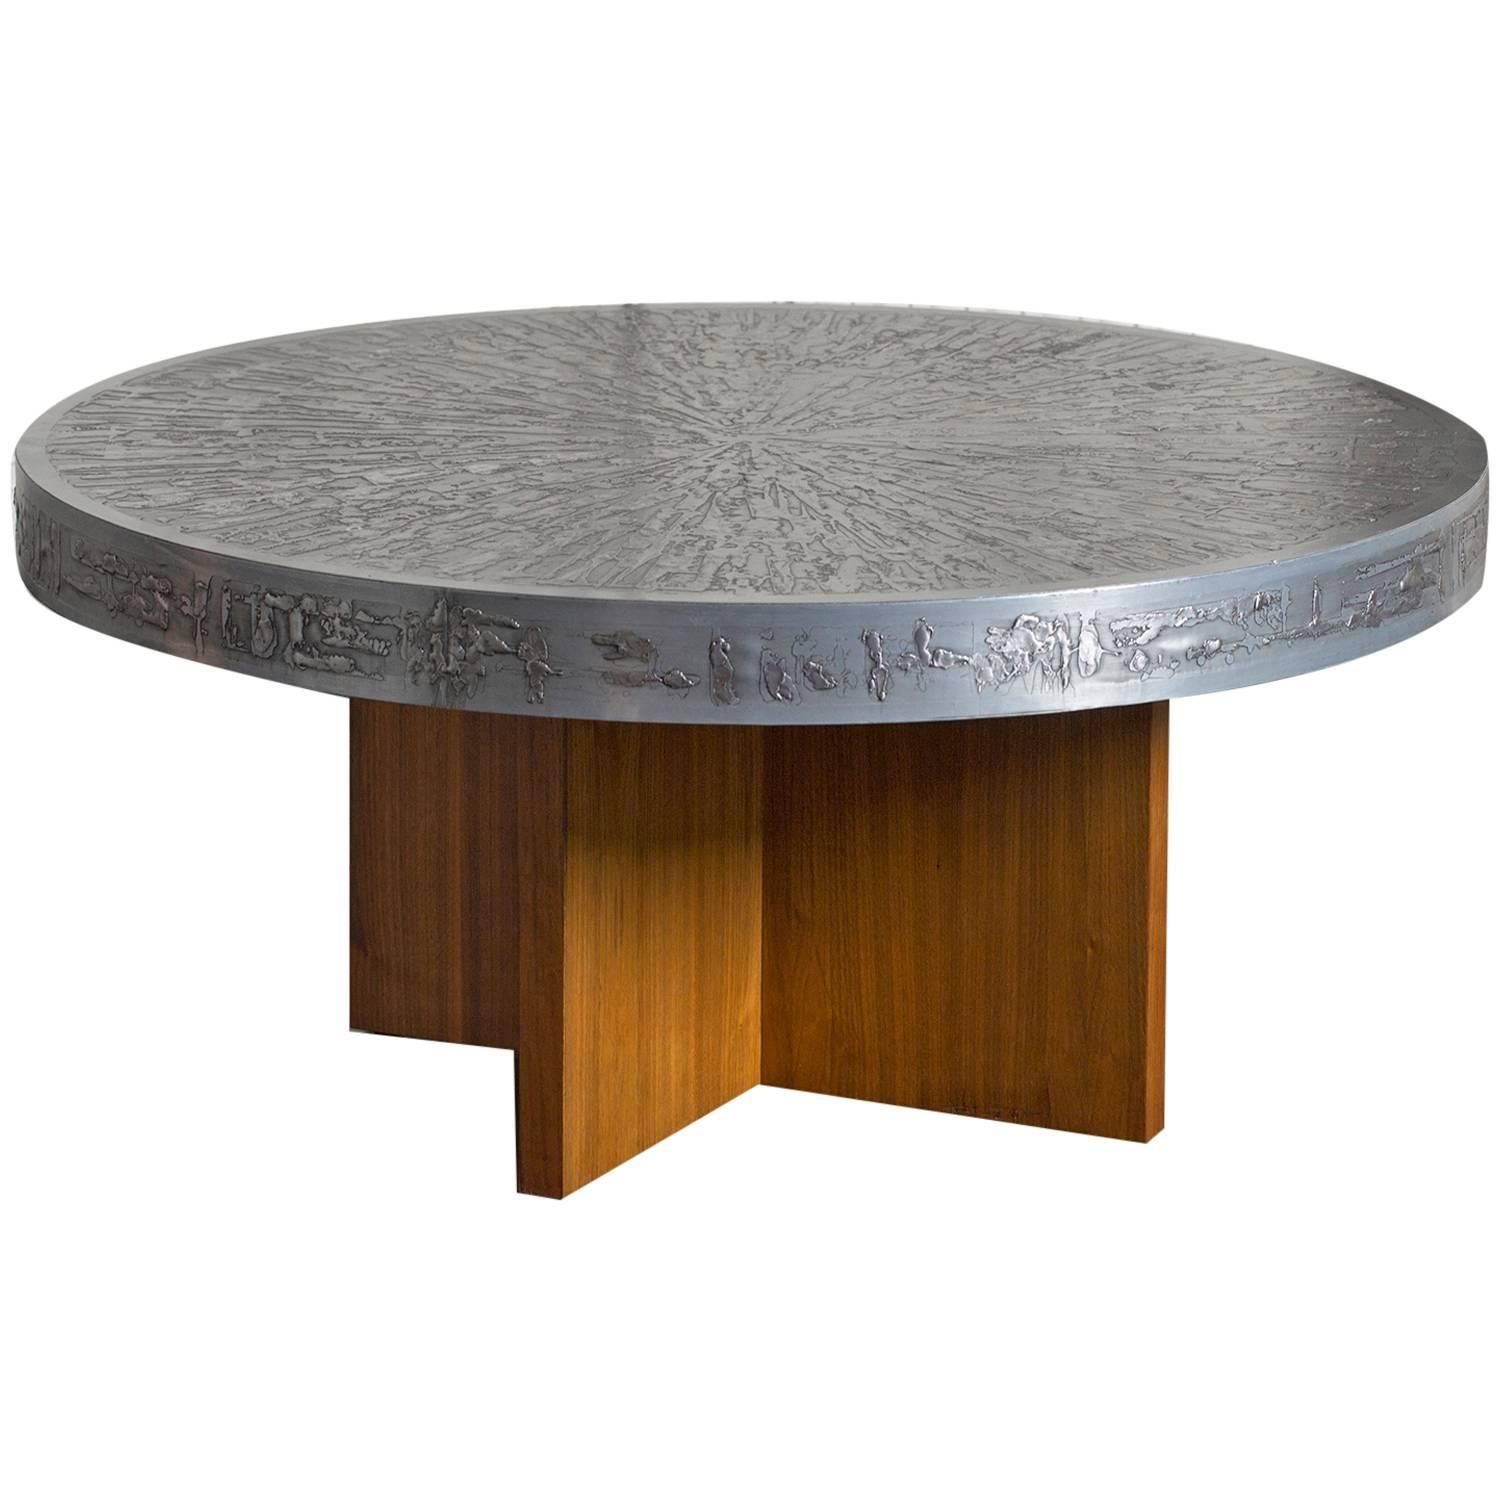 1960s Belgian Round Coffee Table With Embossed Graphic Top Coffee Table Round Coffee Table Table [ 1500 x 1500 Pixel ]